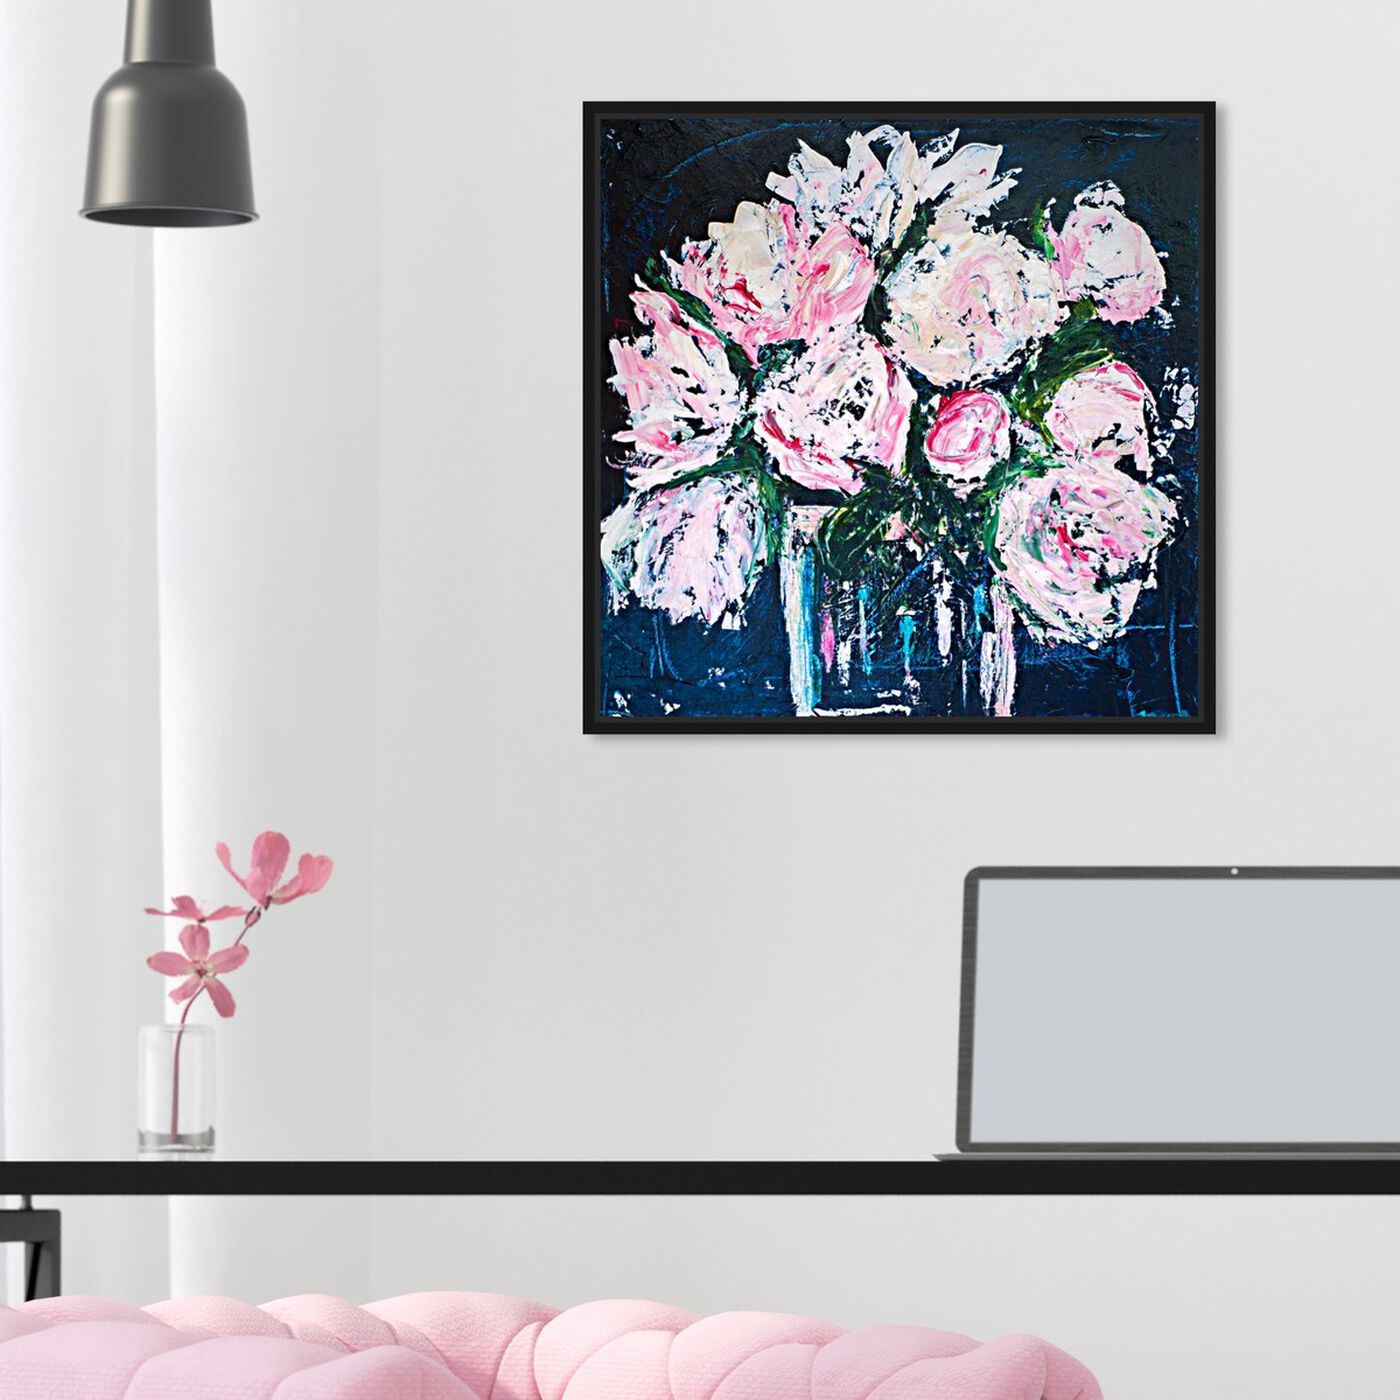 Hanging view of Peonies by The Bucket by Claire Sower featuring floral and botanical and florals art.